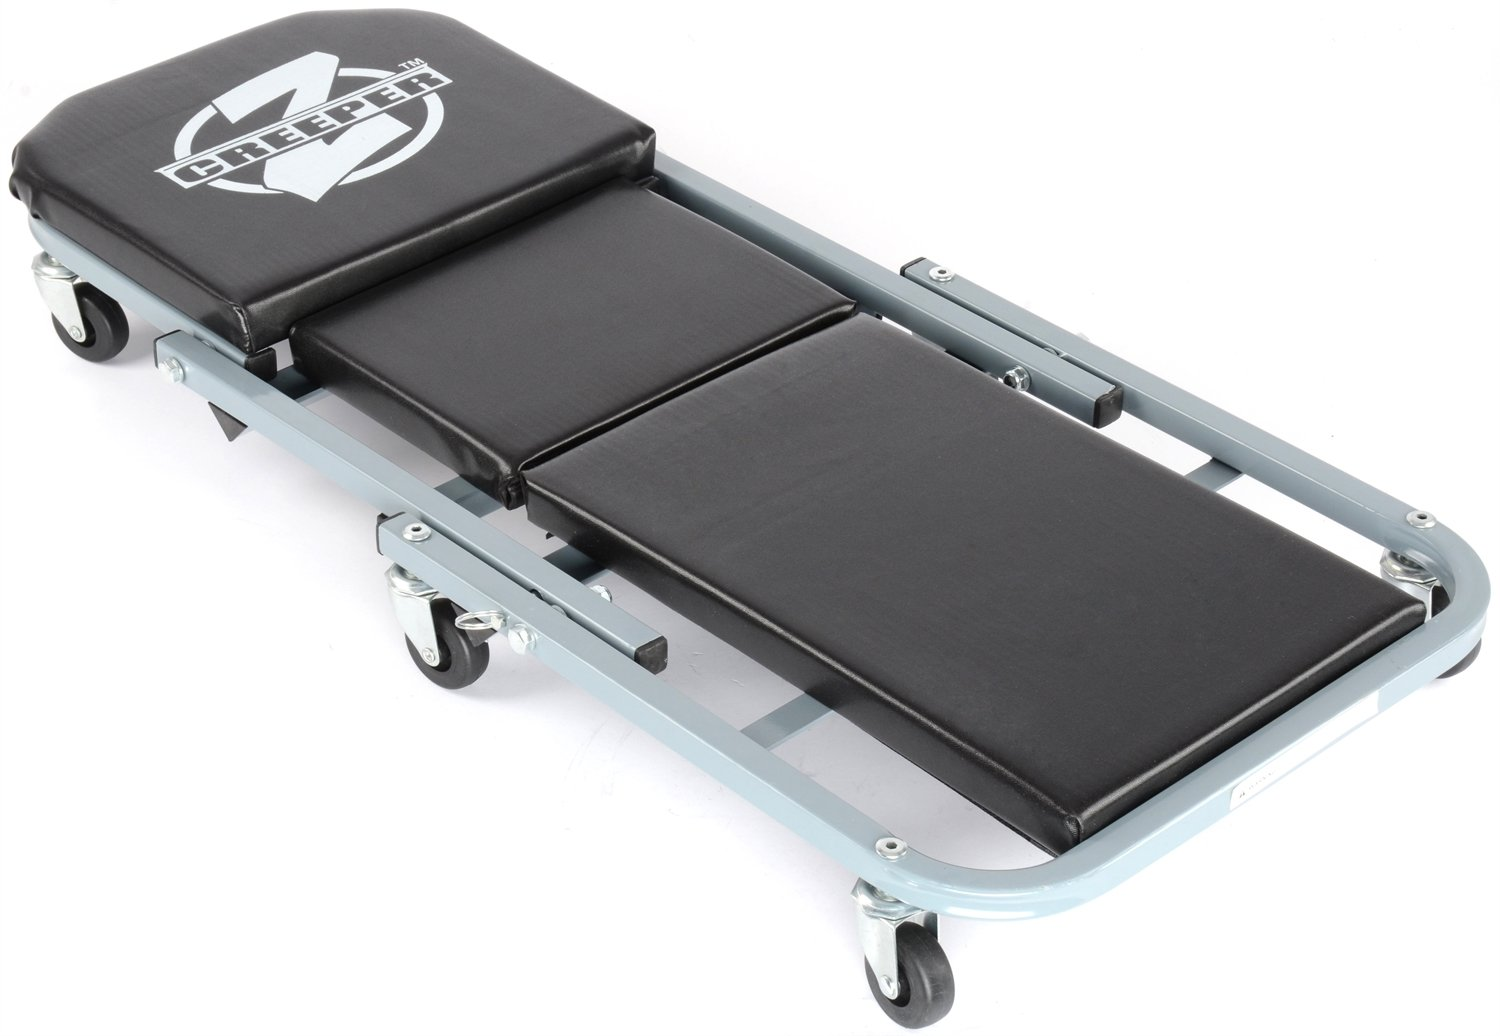 JEGS Performance Products 81165 2 in 1 Foldable Creeper & Seat by JEGS (Image #1)